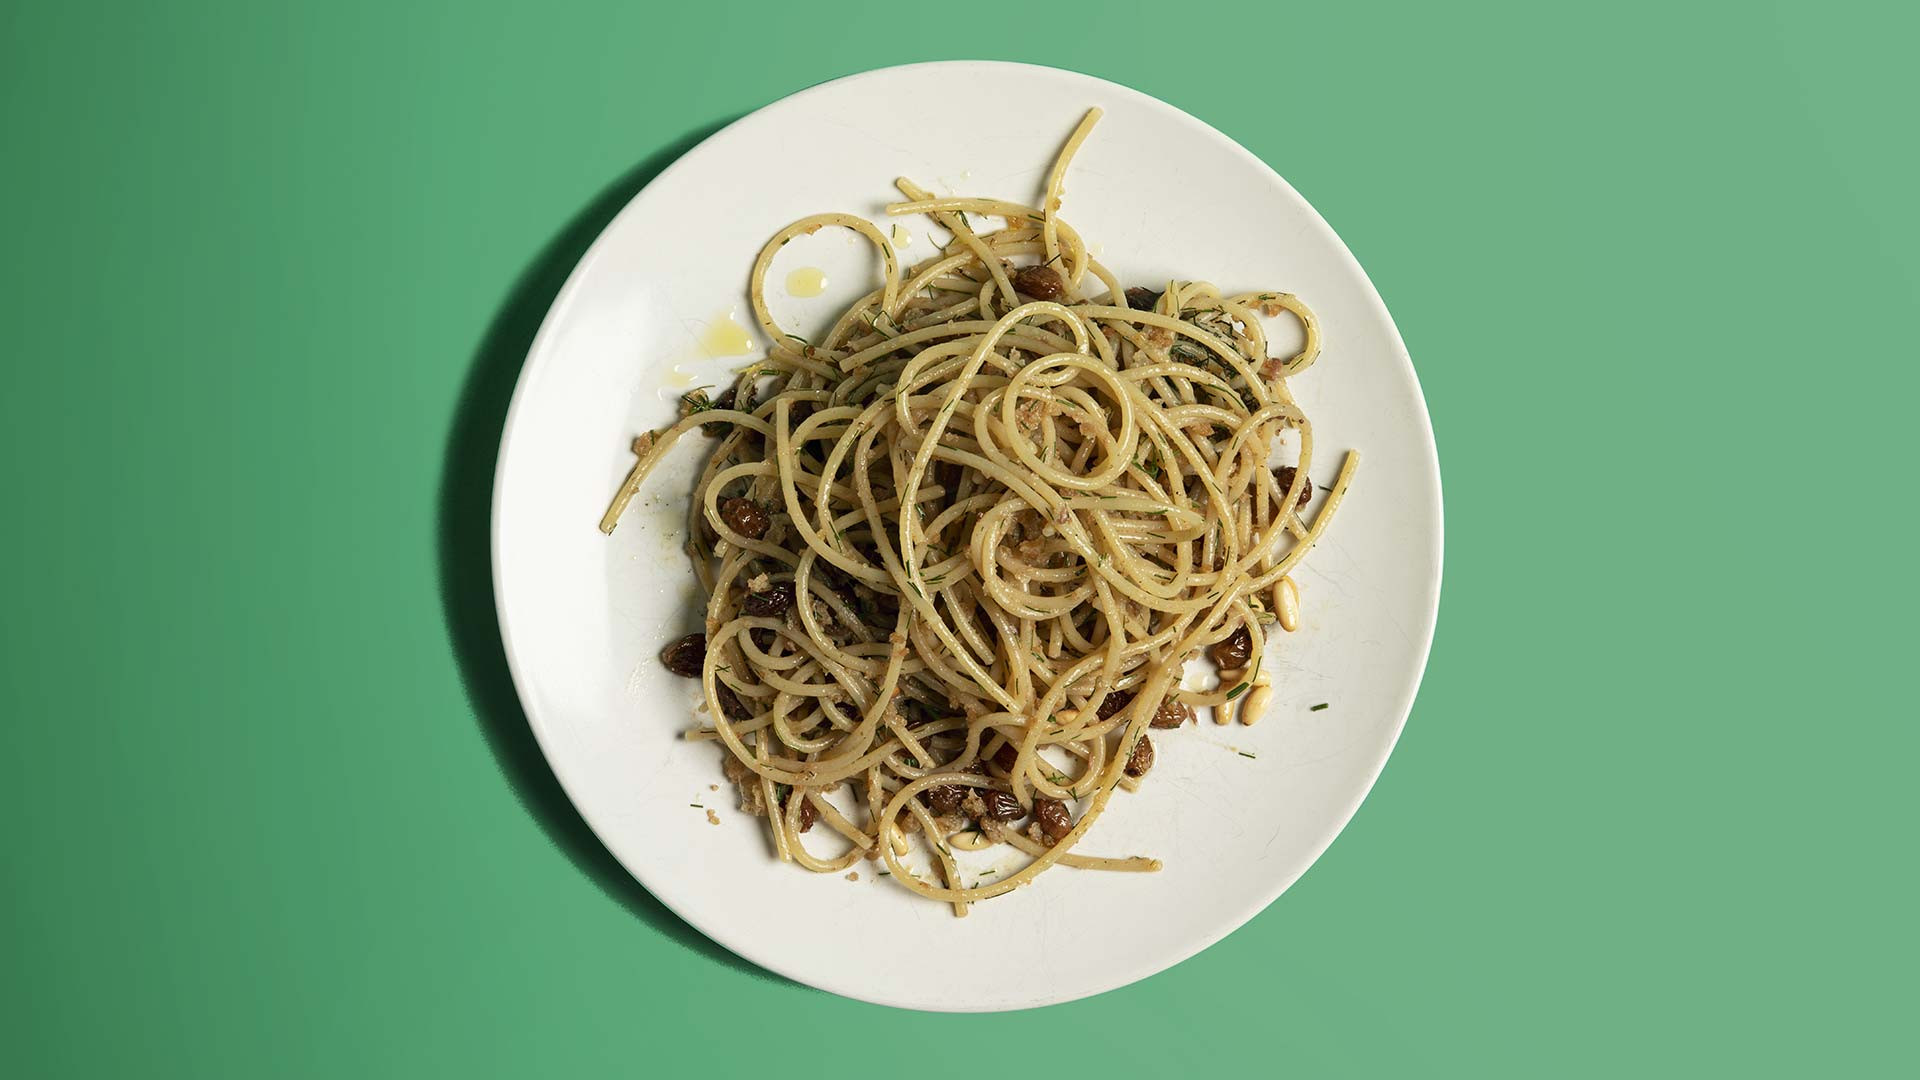 Spaghetti with anchovy, pine nuts, sultanas and wild fennel